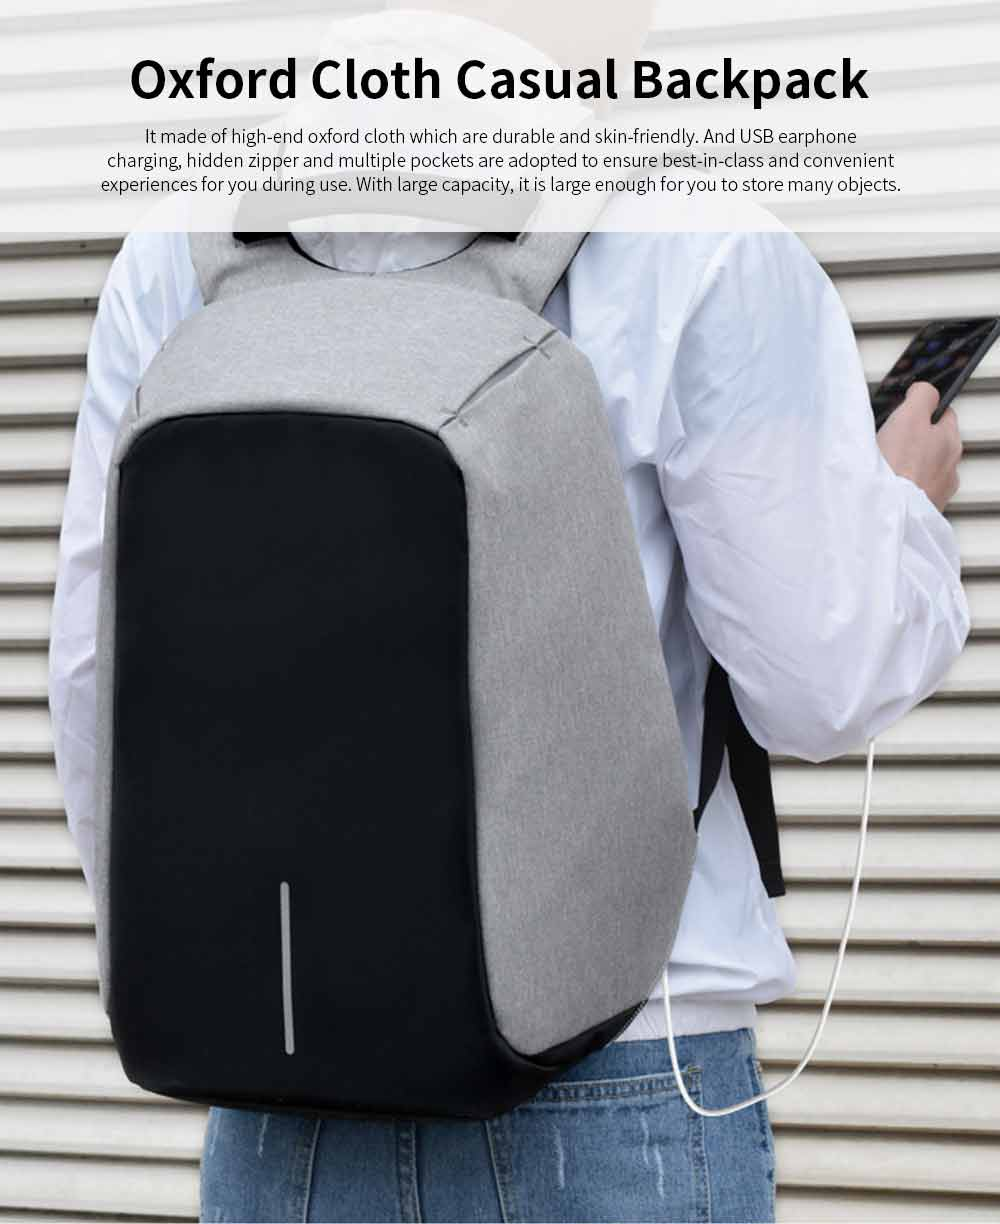 Business Waterproof Scratch-proof Oxford Cloth Casual Man Backpack, Anti-theft Shoulder Bag with USB Charging 0